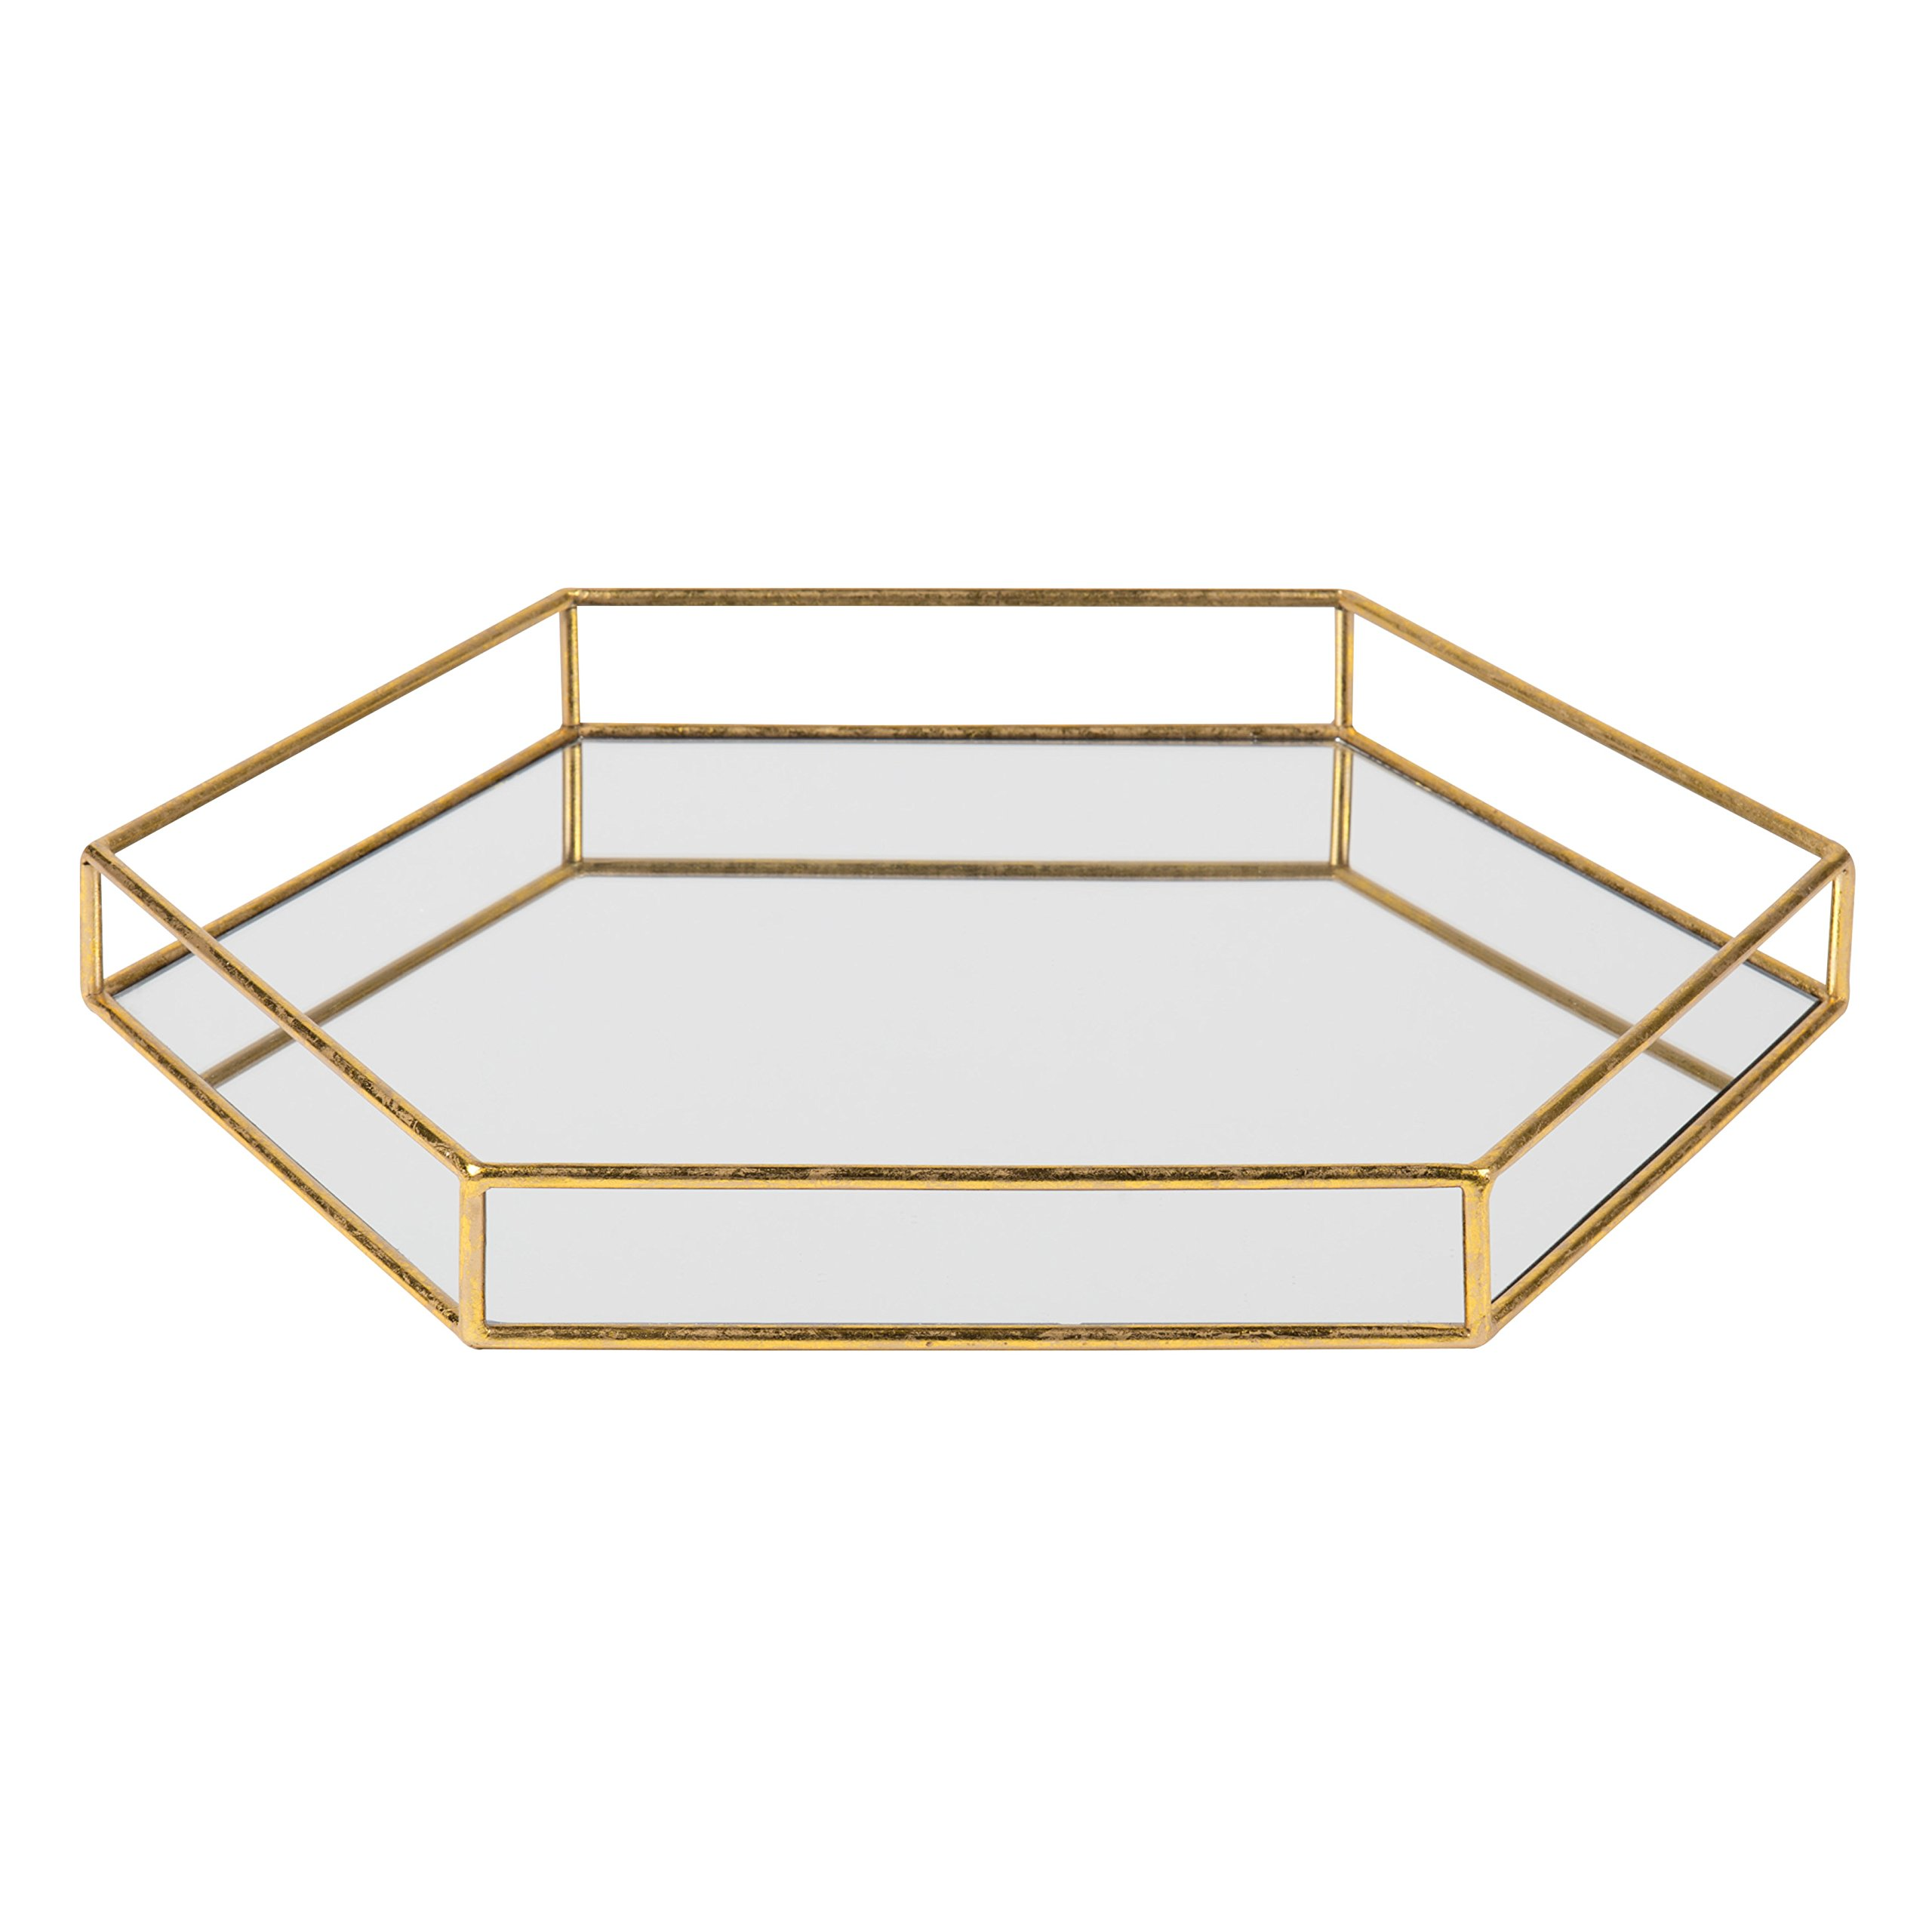 Kate and Laurel Felicia 20x20 Metal Mirrored Hexagon Decorative Tray, Gold by Kate and Laurel